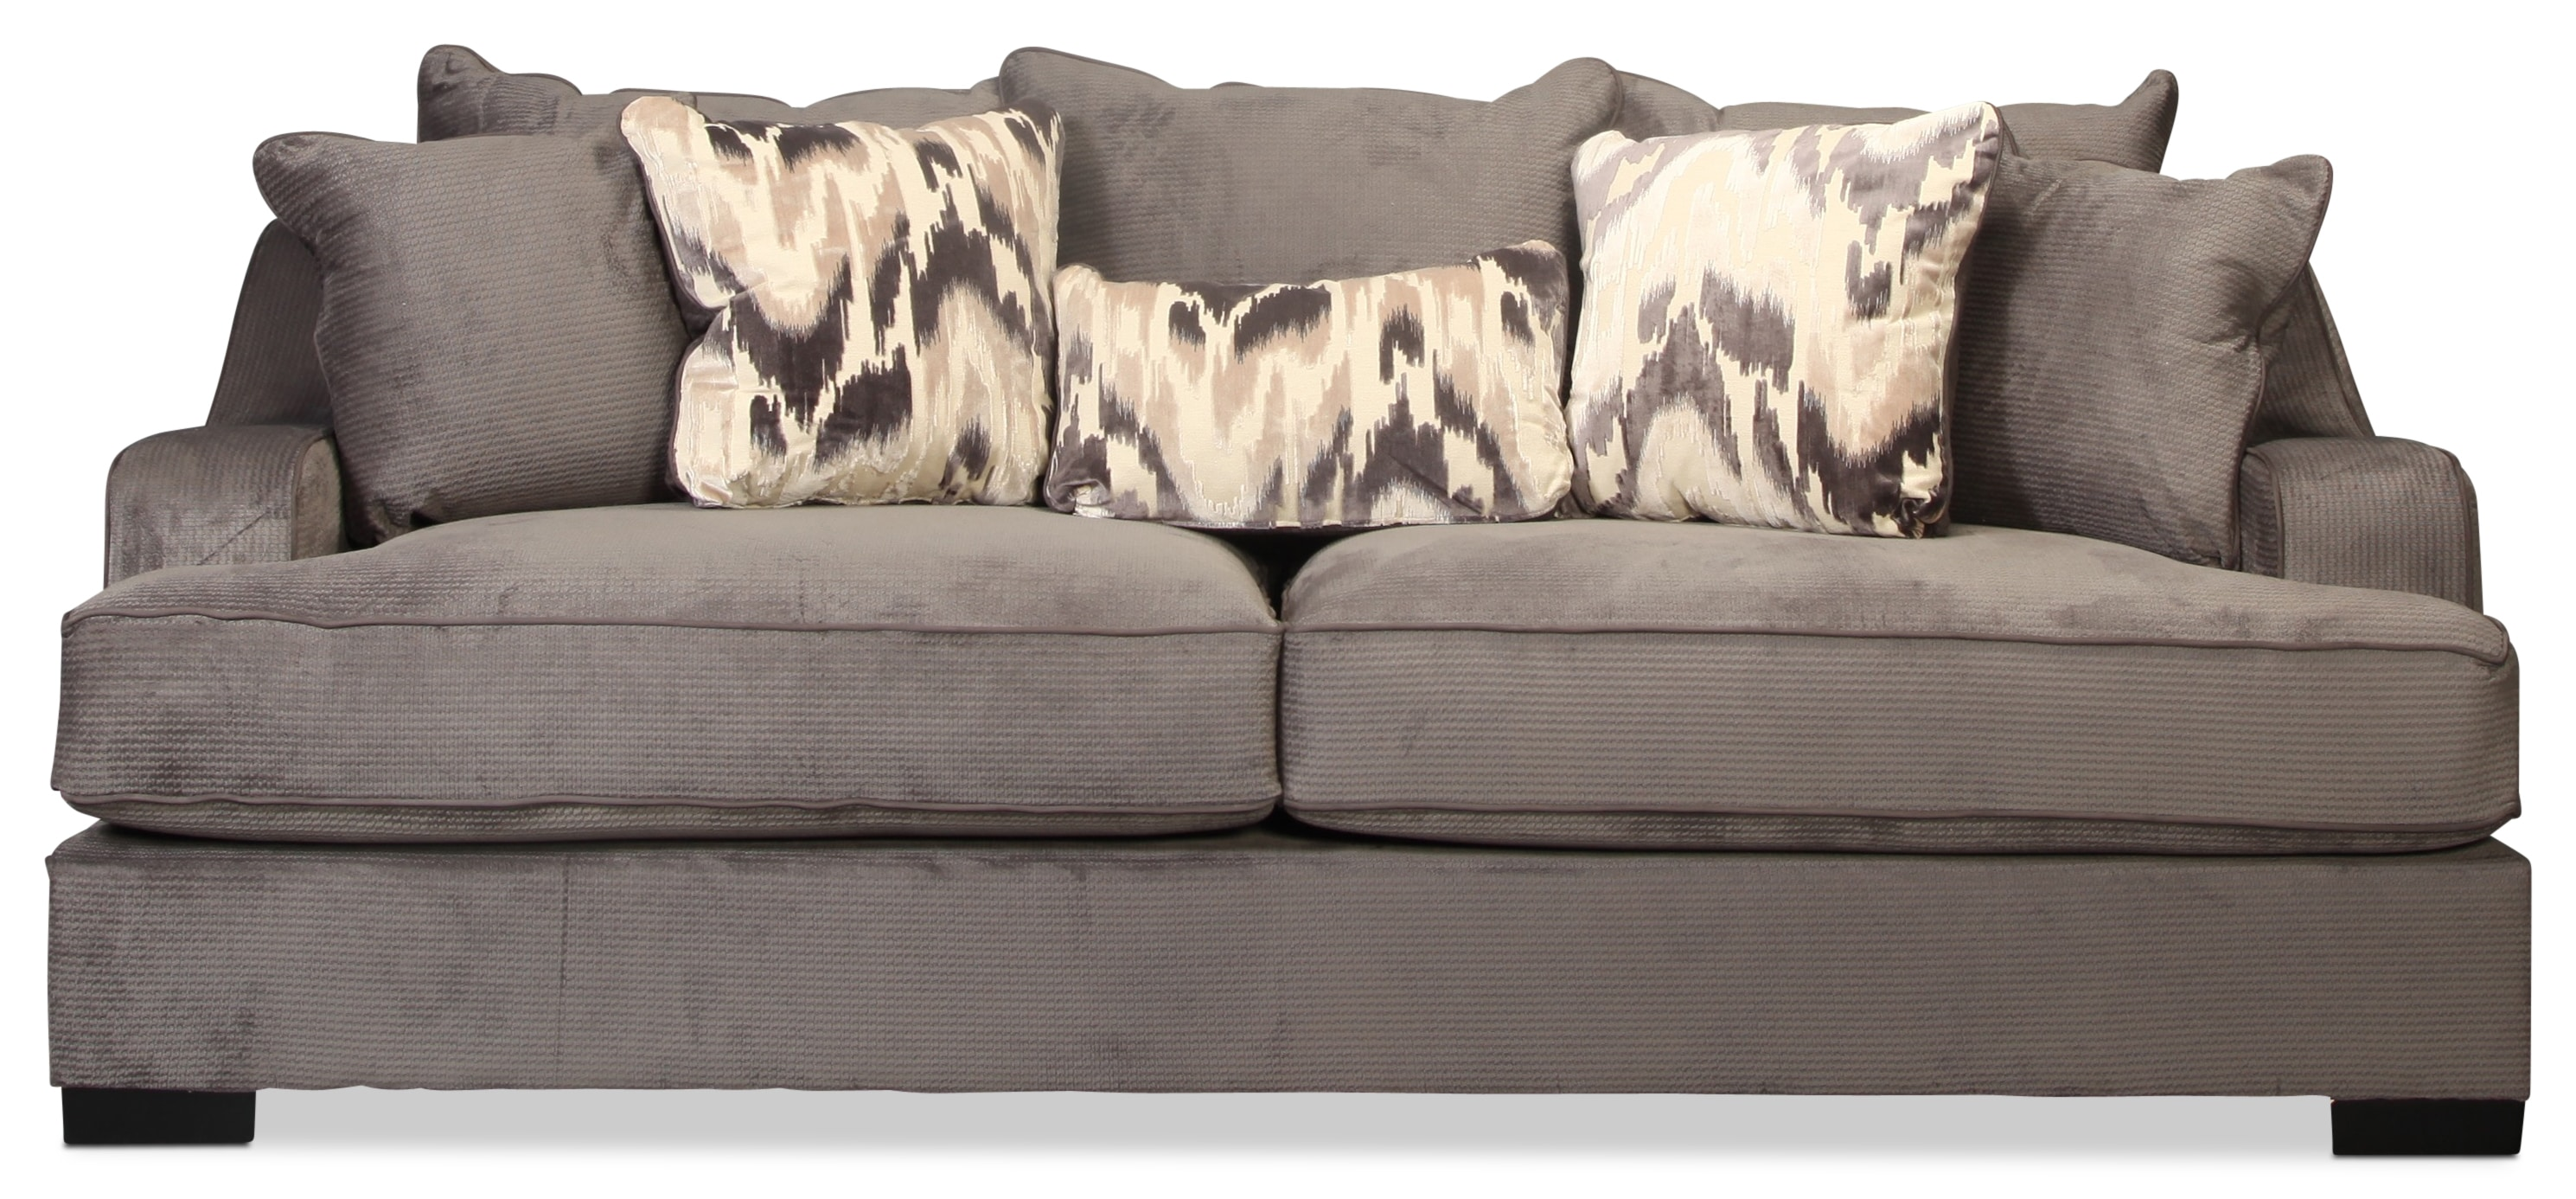 The Spartan Sofa